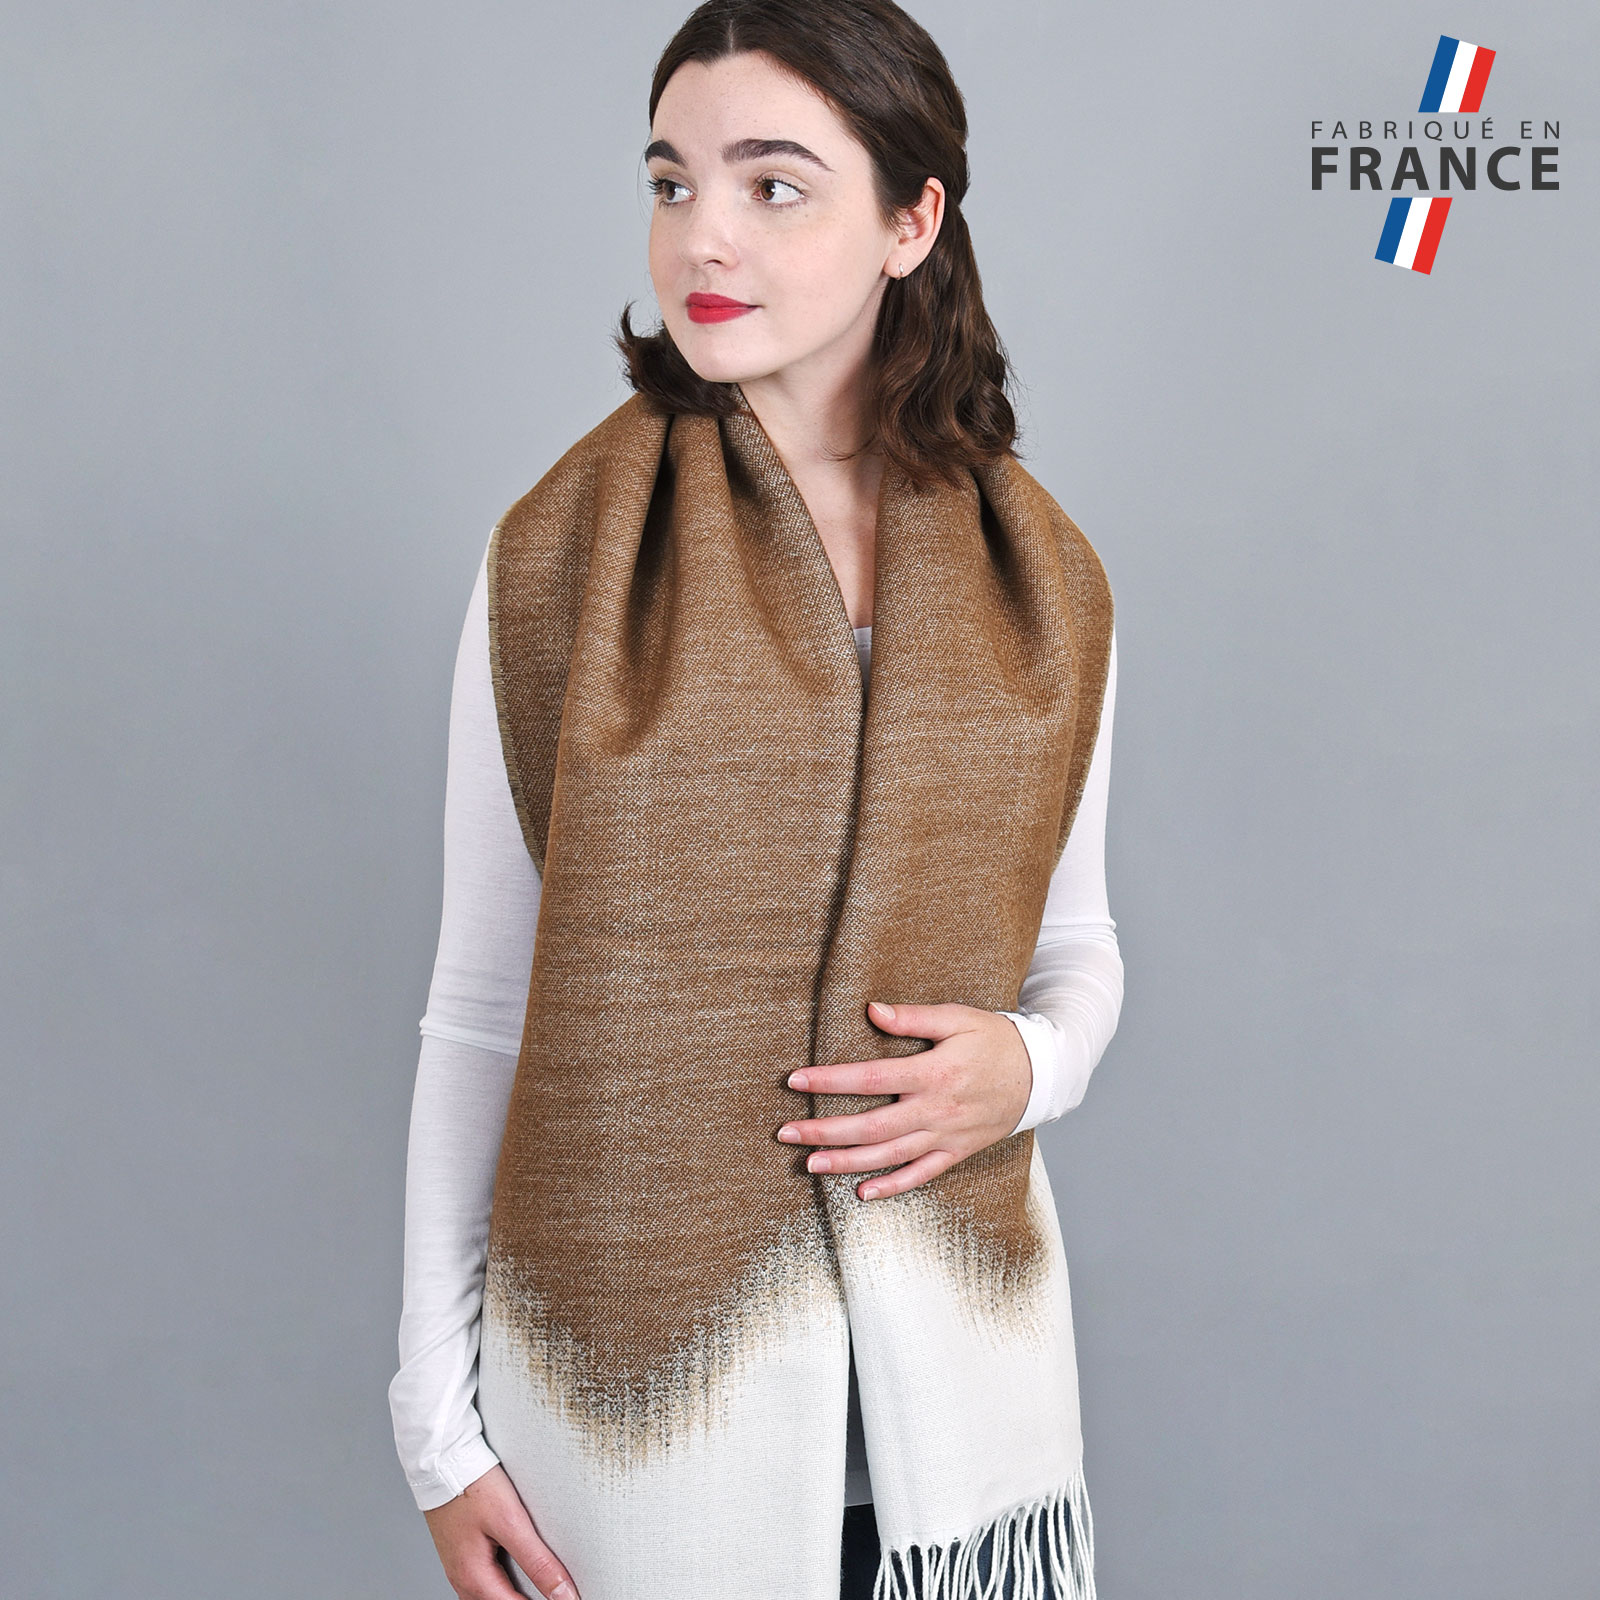 AT-04163-VF16-2-LB_FR-chale-femme-degrade-marron-taupe